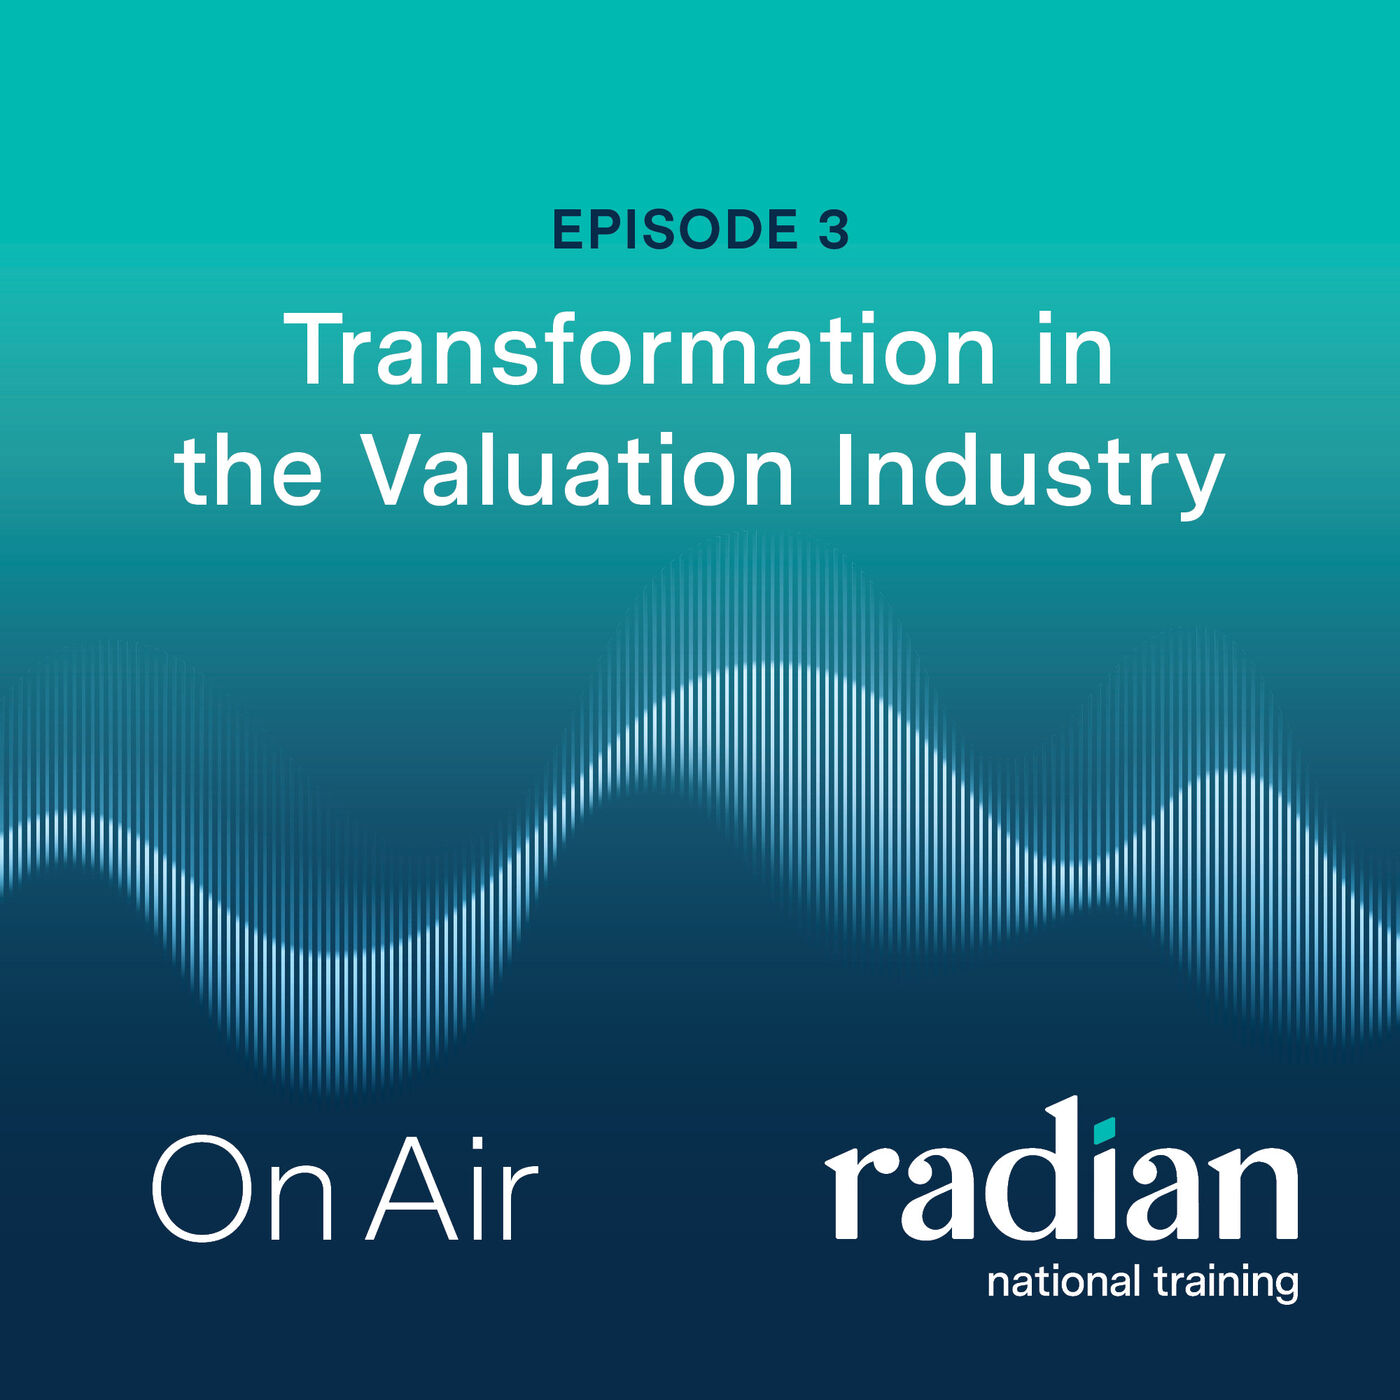 Transformation in the Valuation Industry